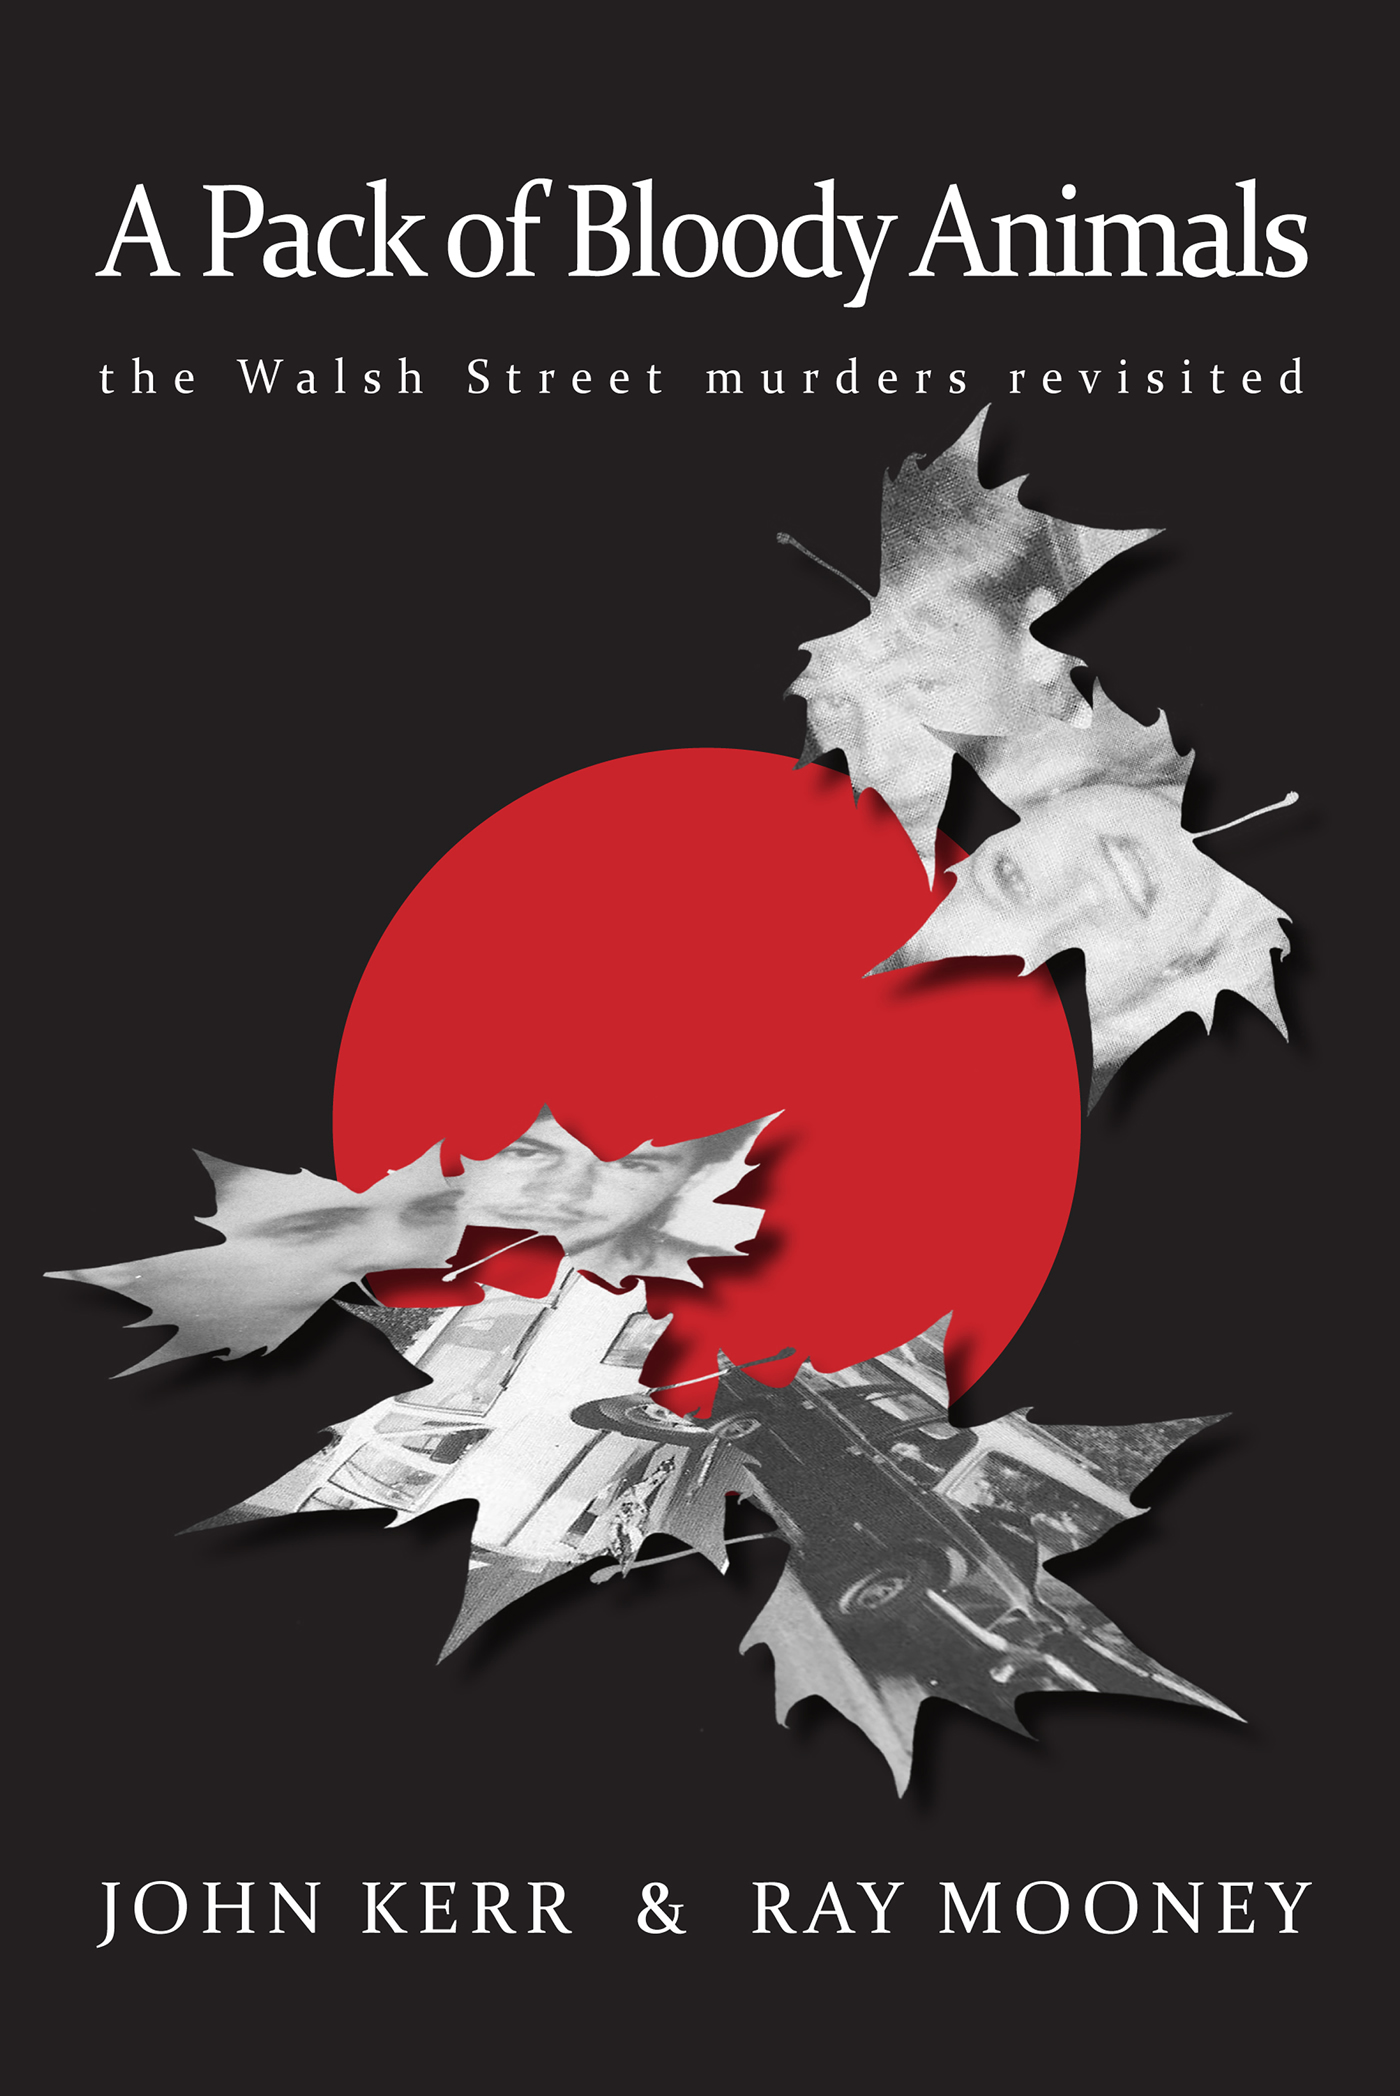 A Pack of Bloody Animals - The Walsh Street murders revisited